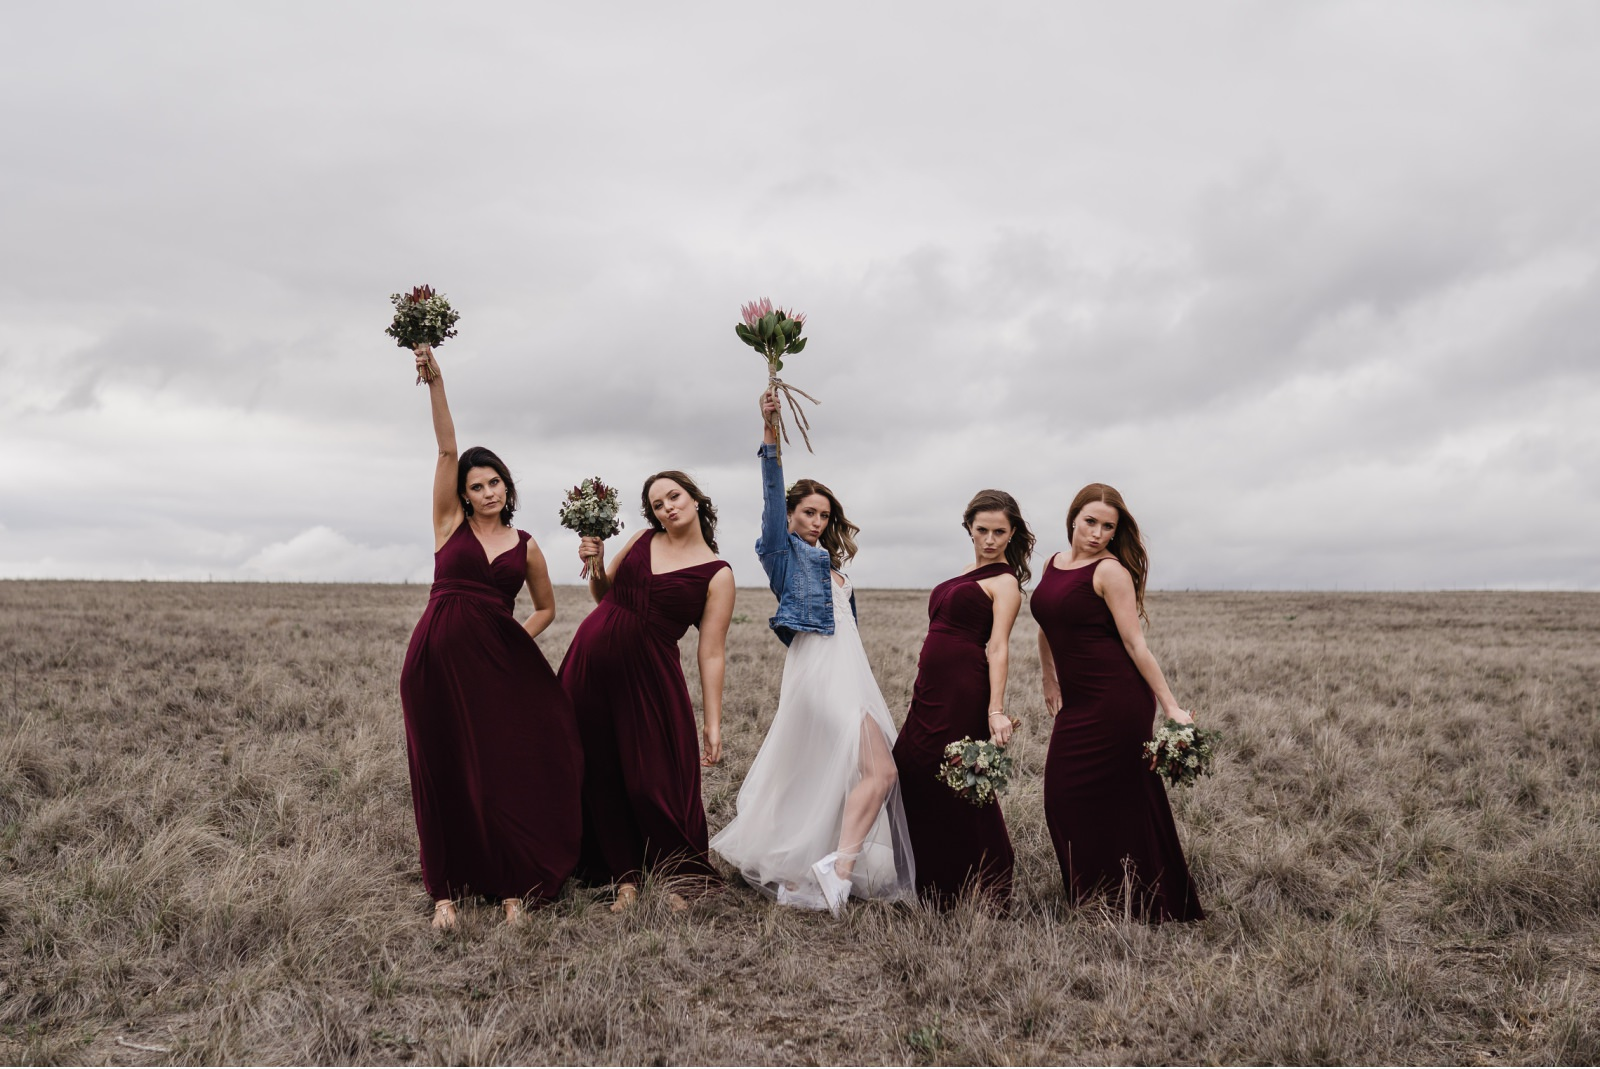 scone-wedding-photographer-upper-hunter-valley-47